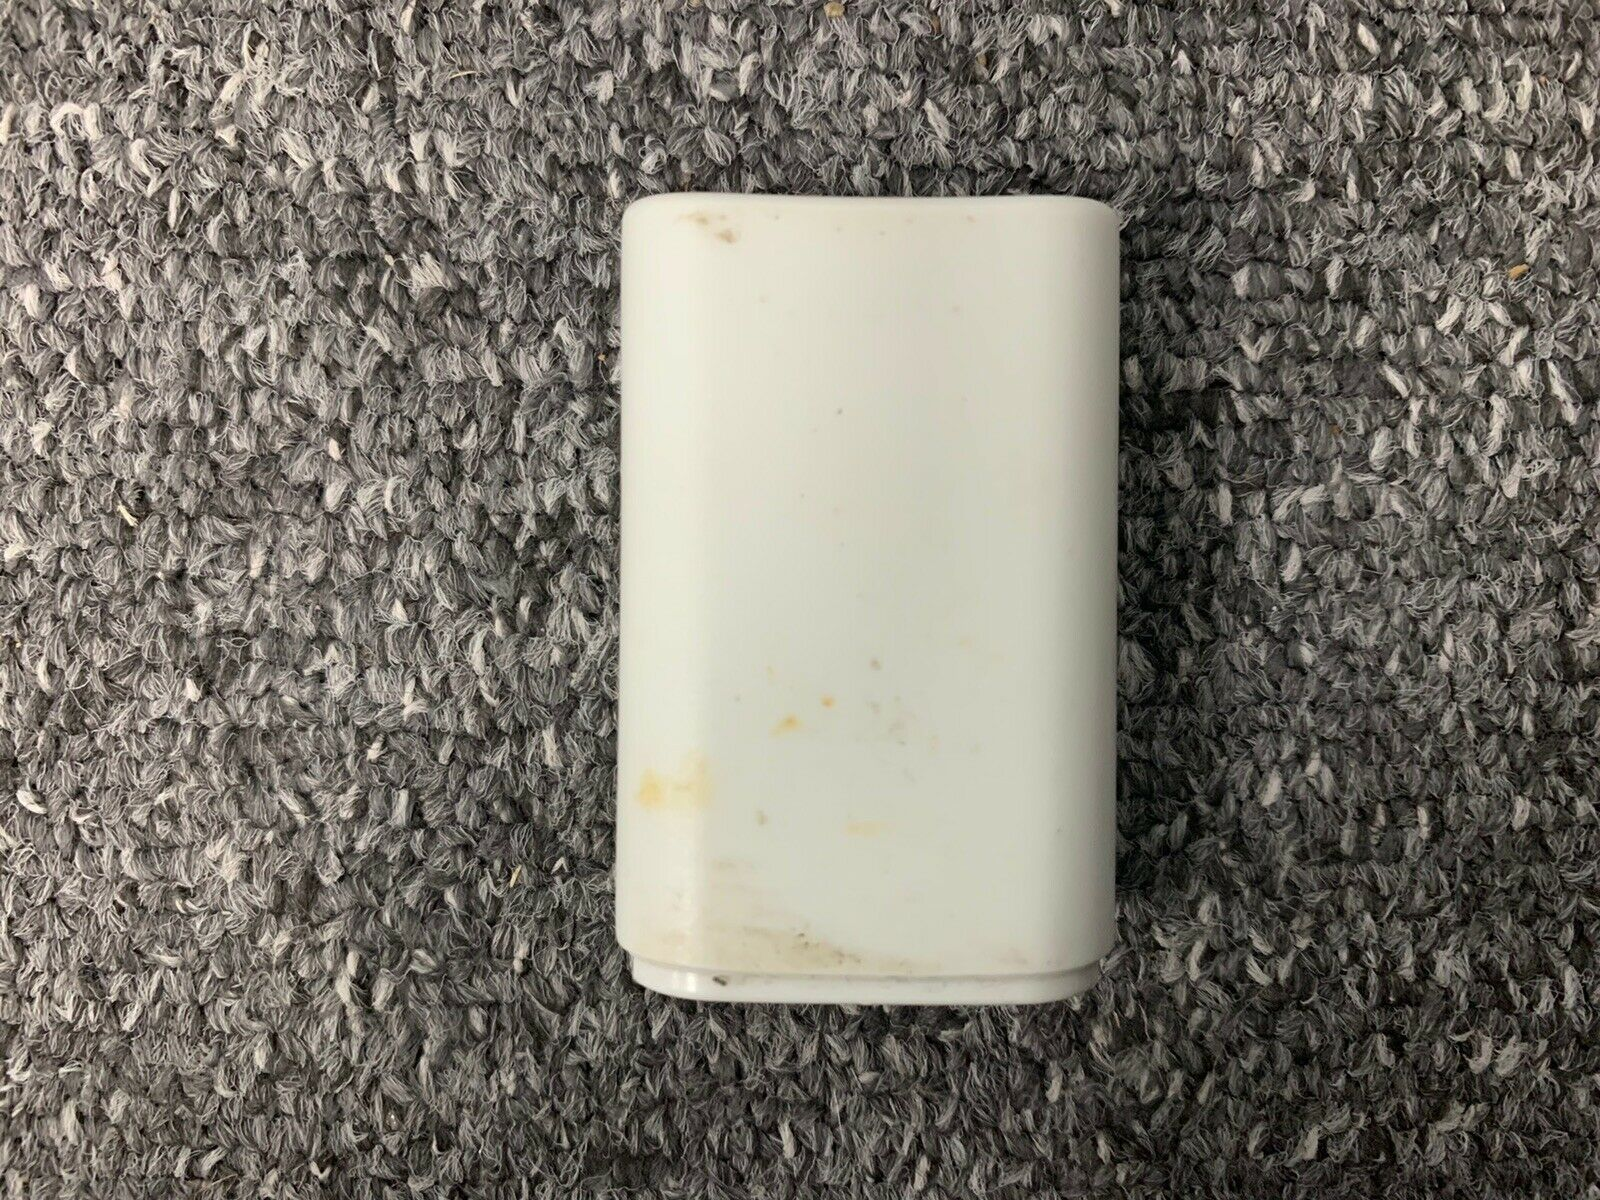 White Microsoft Xbox 360 Rechargable Battery Pack For Controller